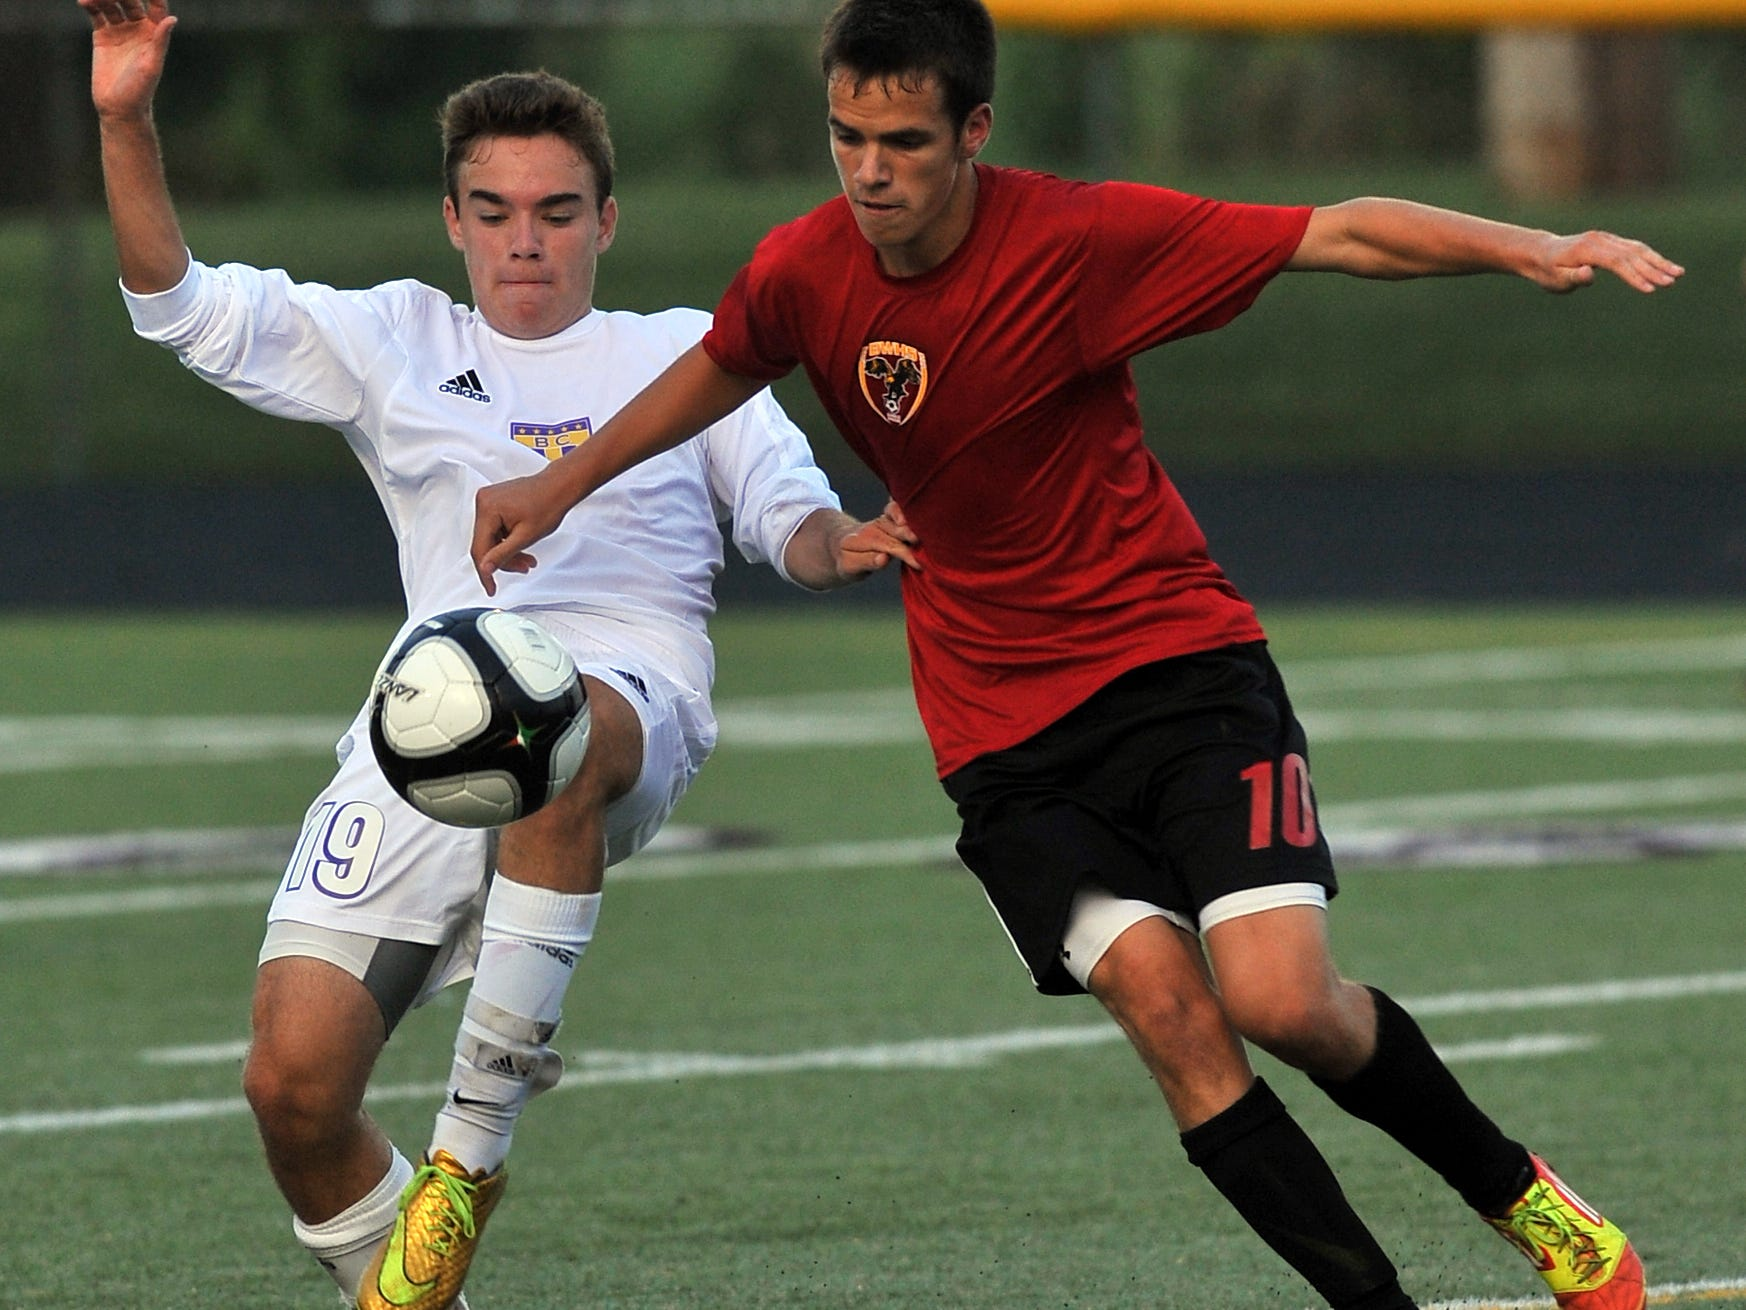 Bloom-Carroll's Chance Ertuncay tries to keep control of the ball during a nonleague game Thursday against Big Walnut.